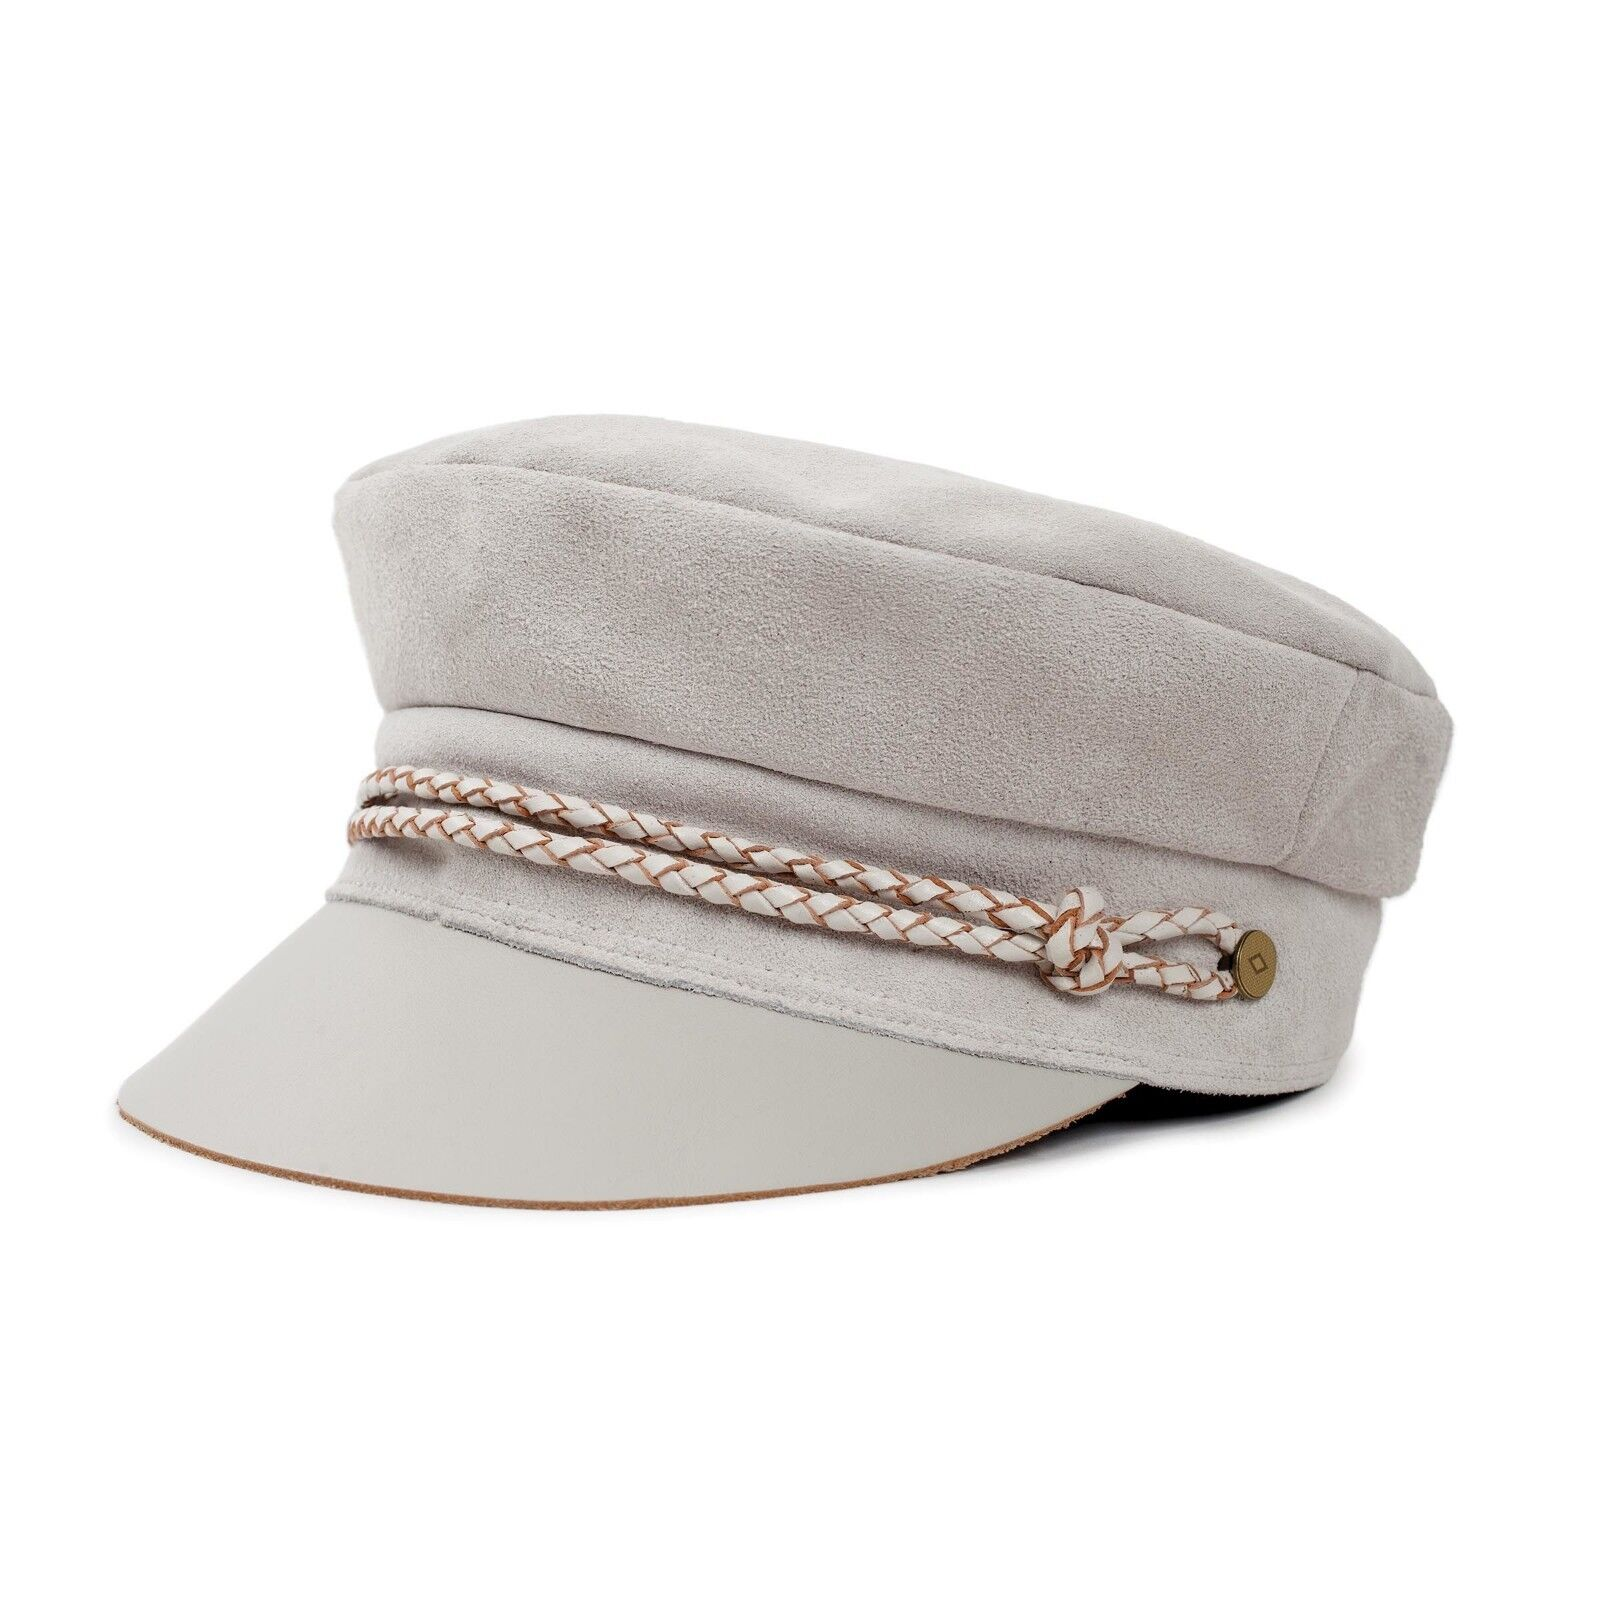 Women's BRIXTON Kayla Cream Suede Leather Moto Cap Size XS 6 3/4 – Fast Shipping Clothing, Shoes & Accessories